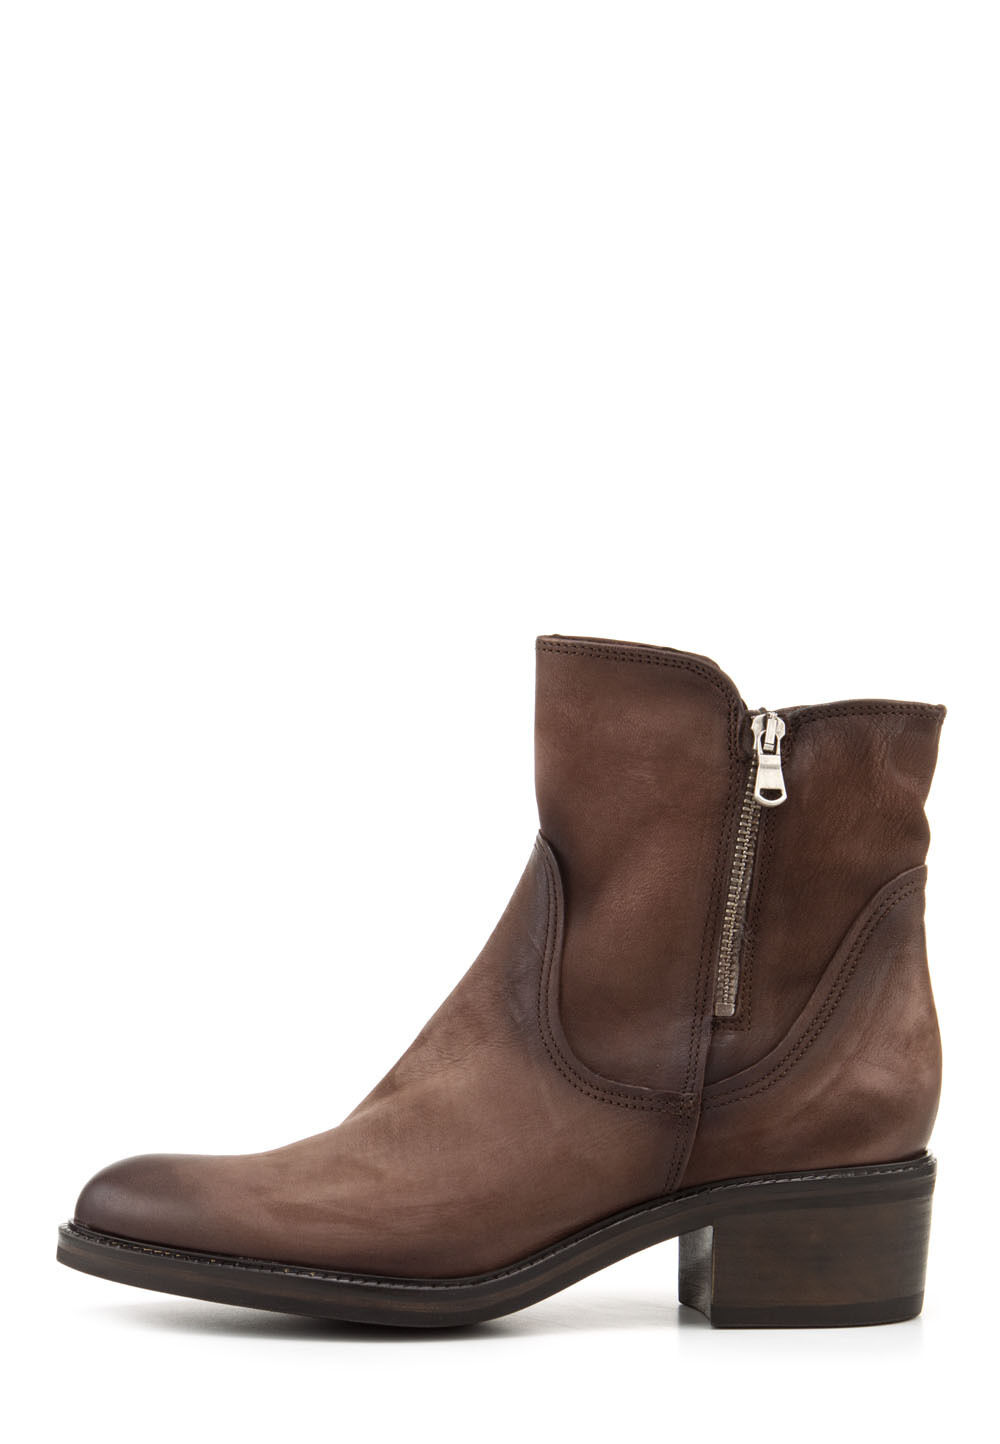 FIRENZE boots, taille 39, Neuf, Prix RecomFemmedé , cuir, Paragraphe Paragraphe Paragraphe 5 cm, Fb. marron 060c15